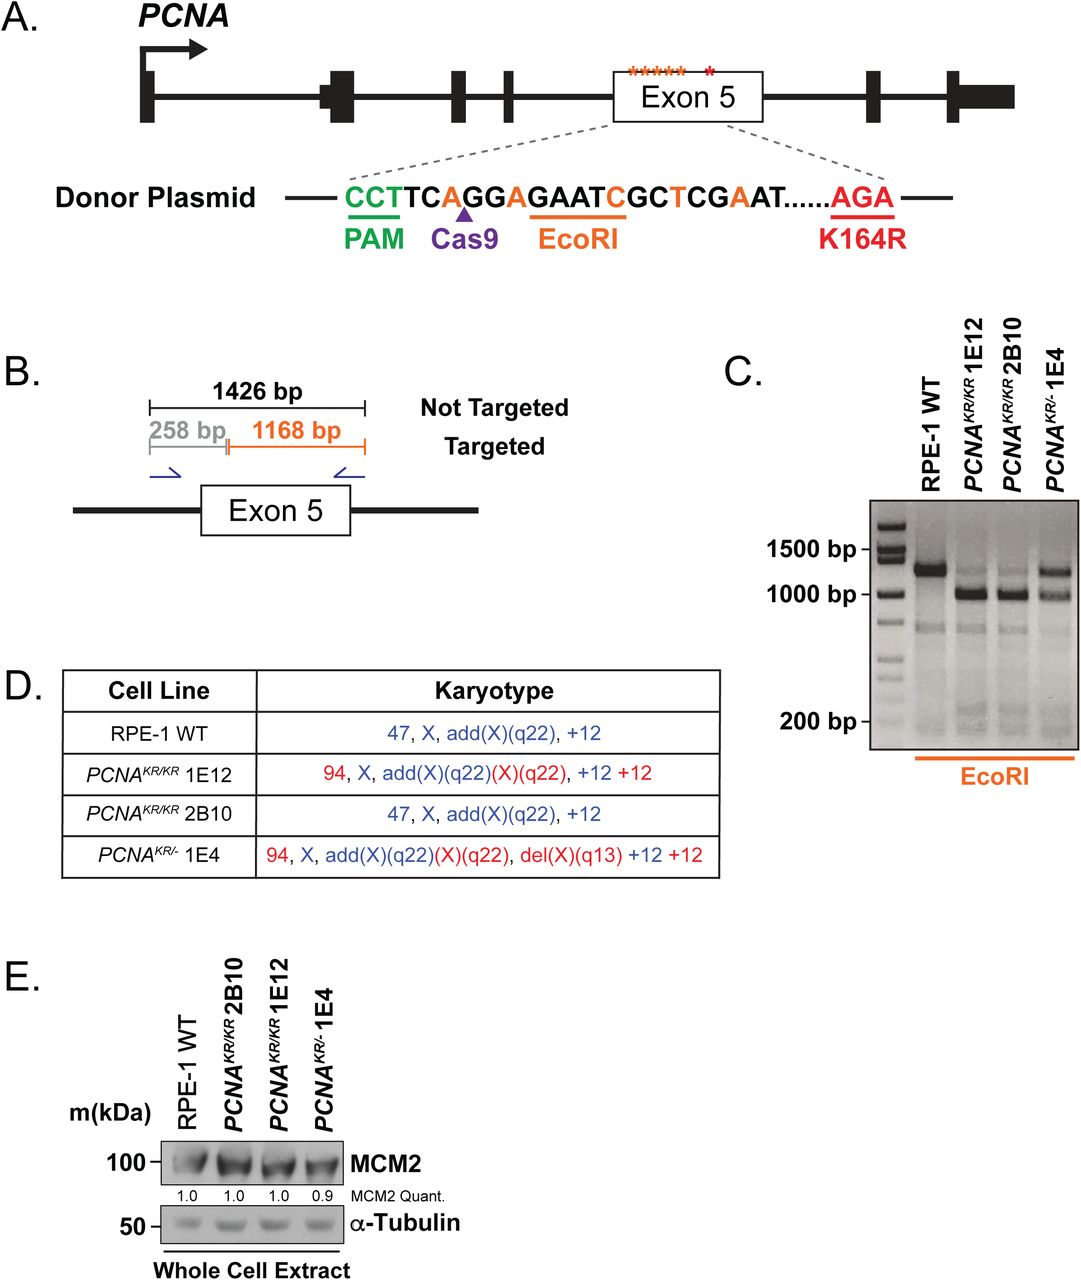 Generation of a PCNA K164R mutant cell line in RPE-1 using CRISPR/Cas9 A) Schematic of the human PCNA indicating that exon 5 was targeted by CRISPR-Cas9. The K164R mutation was knocked-in utilizing a donor plasmid. B) Schematic of screening PCR and expected PCR product sizes after EcoRI restriction enzyme digestion. C) Representative genotyping PCR. Not targeted (wildtype; 1426 bp), monoallelic knock-in (KIN) ( PCNA KR/- 1E4; 1426 bp, 1168 bp, 258 bp), and biallelic KIN ( PCNA KR/KR 1E12, 2B10; 1168bp, 258 bp). D) Karyotyping analysis from RPE-1 wildtype, PCNA KR/KR (1E12, 2B10) and PCNA KR/- (1E4) cell lines. Blue indicates expec ted RPE-1 karyotype. Red indicates chromosomal abnormalities. E) Western blot analyses of whole cell extracts from wildtype RPE-1, PCNA K164R , and RAD18 -/- cells for MCM2 with α-Tubulin as the loading control. Quantification of MCM2 levels normalized to loading control.